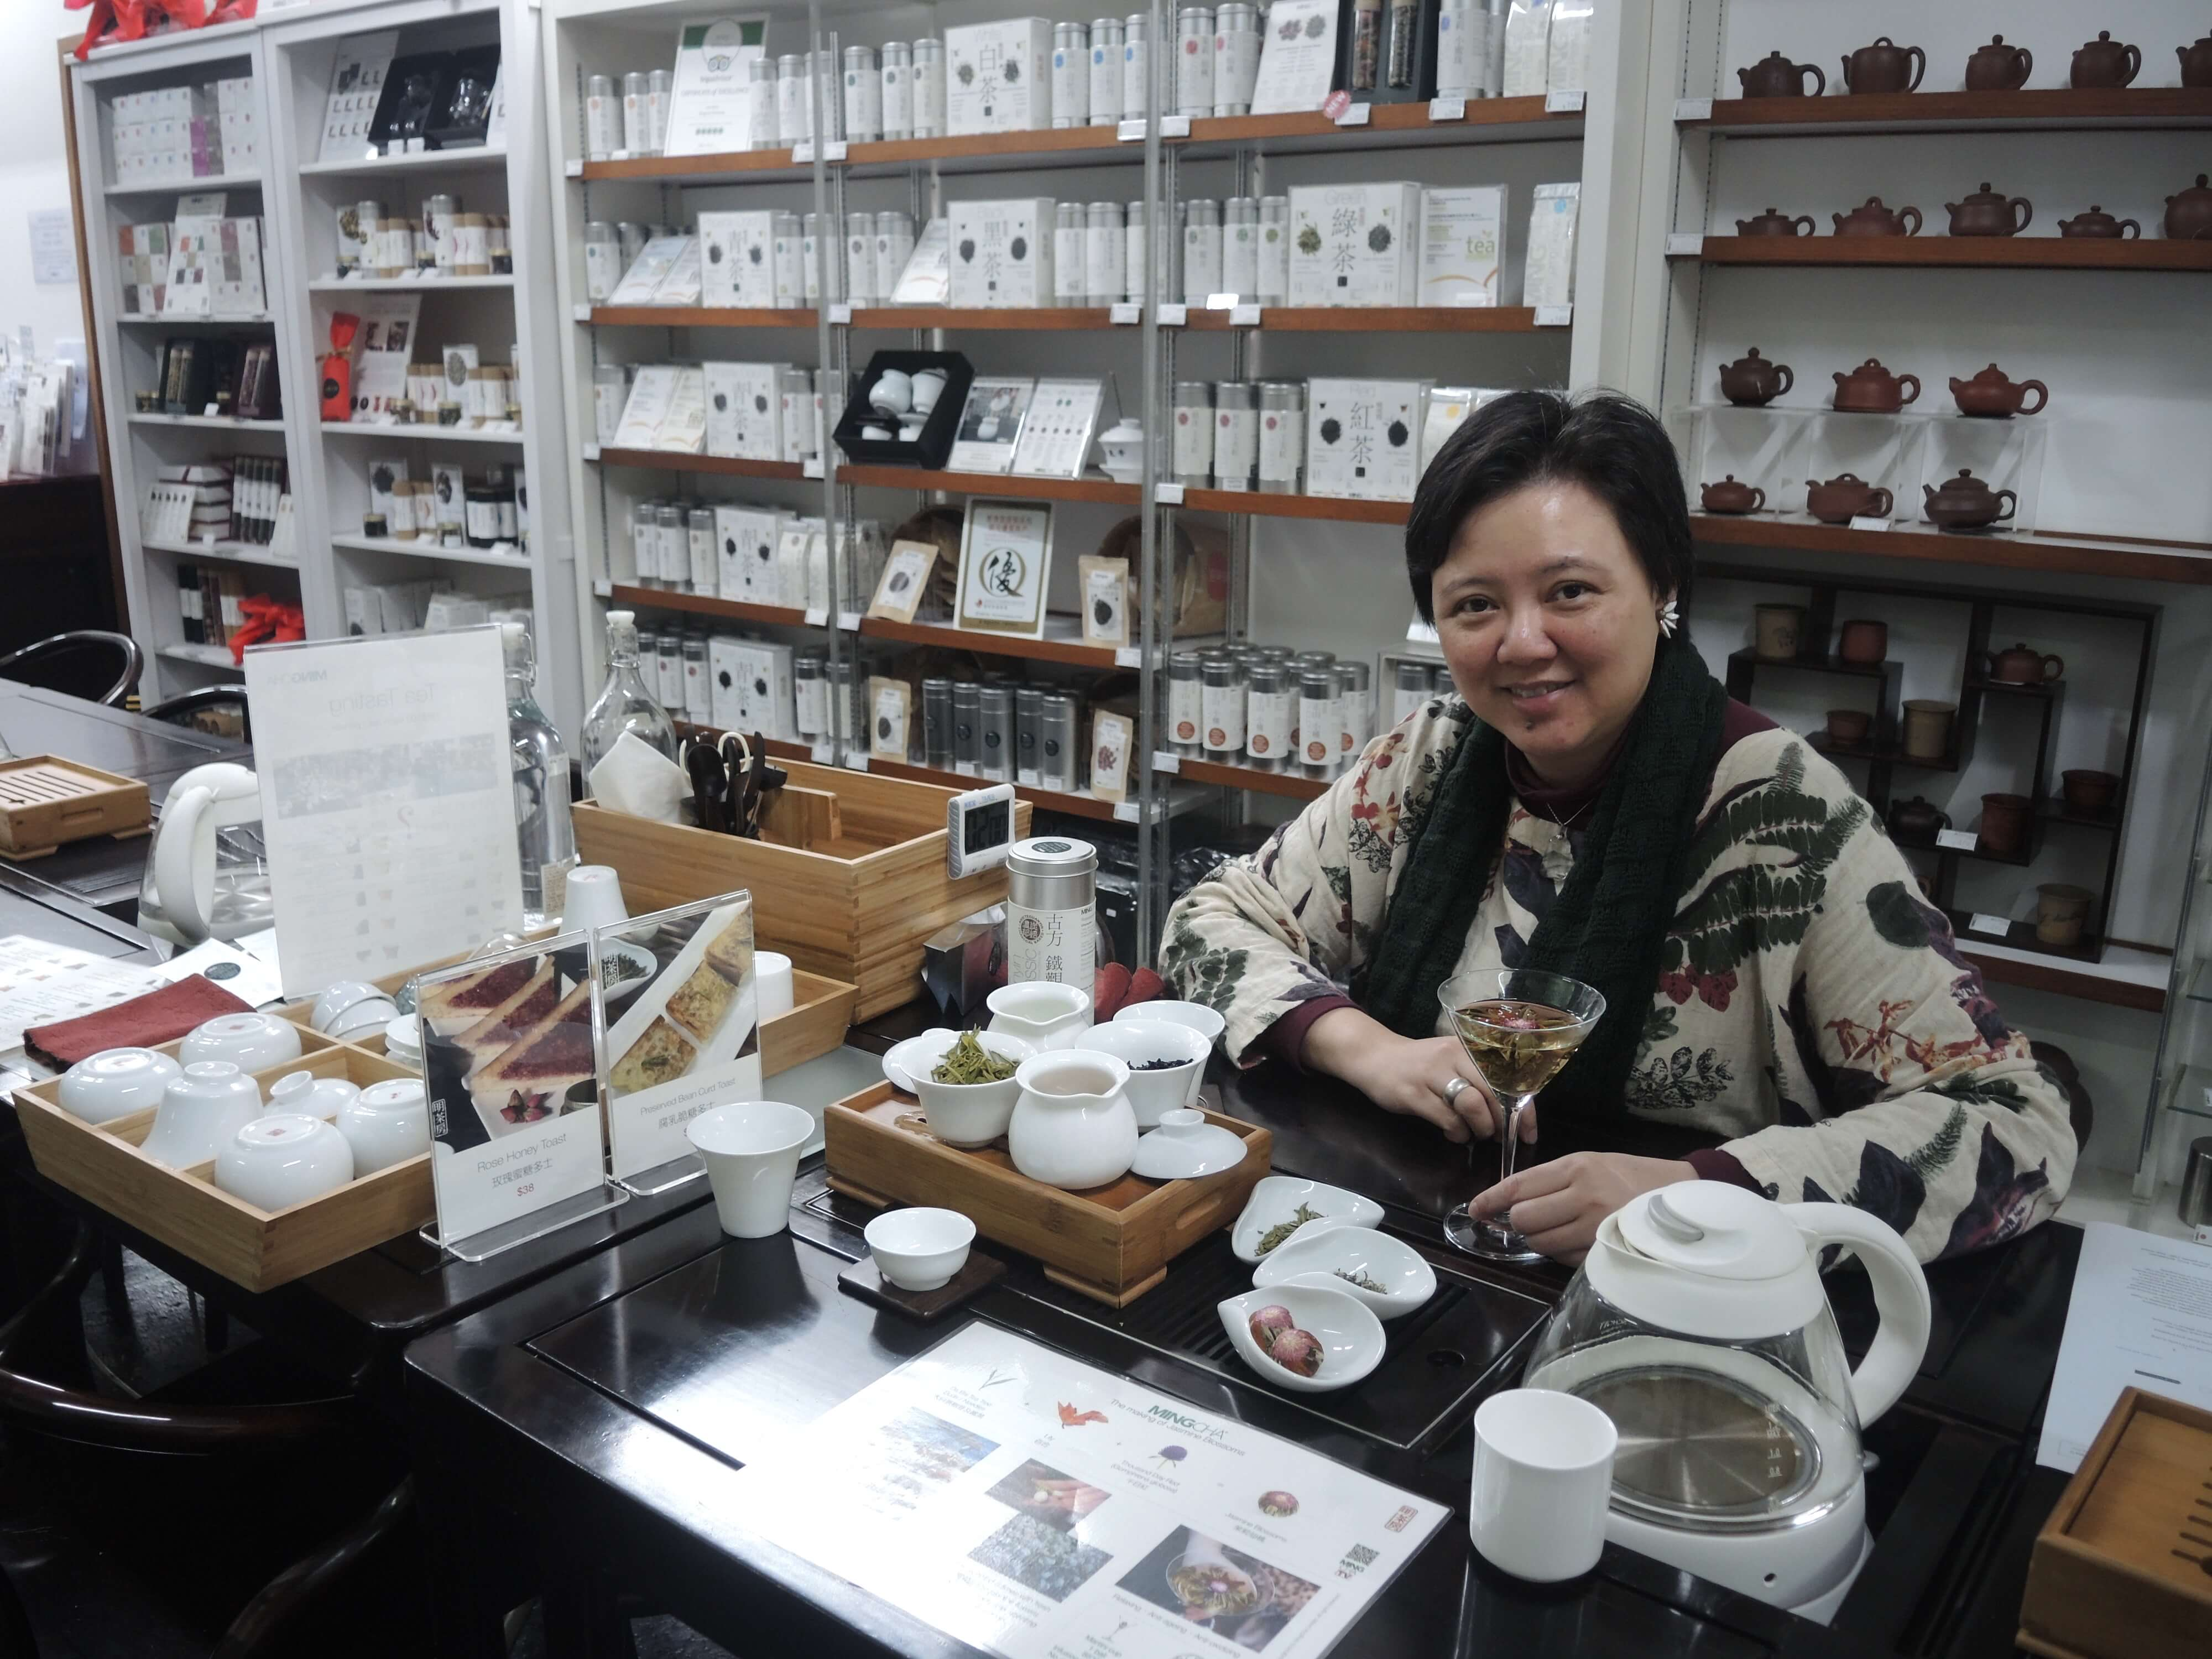 Founder of Ming Cha Limited, Vivian Mak, said every step of the production process is crucial and can affect the quality of the tea.